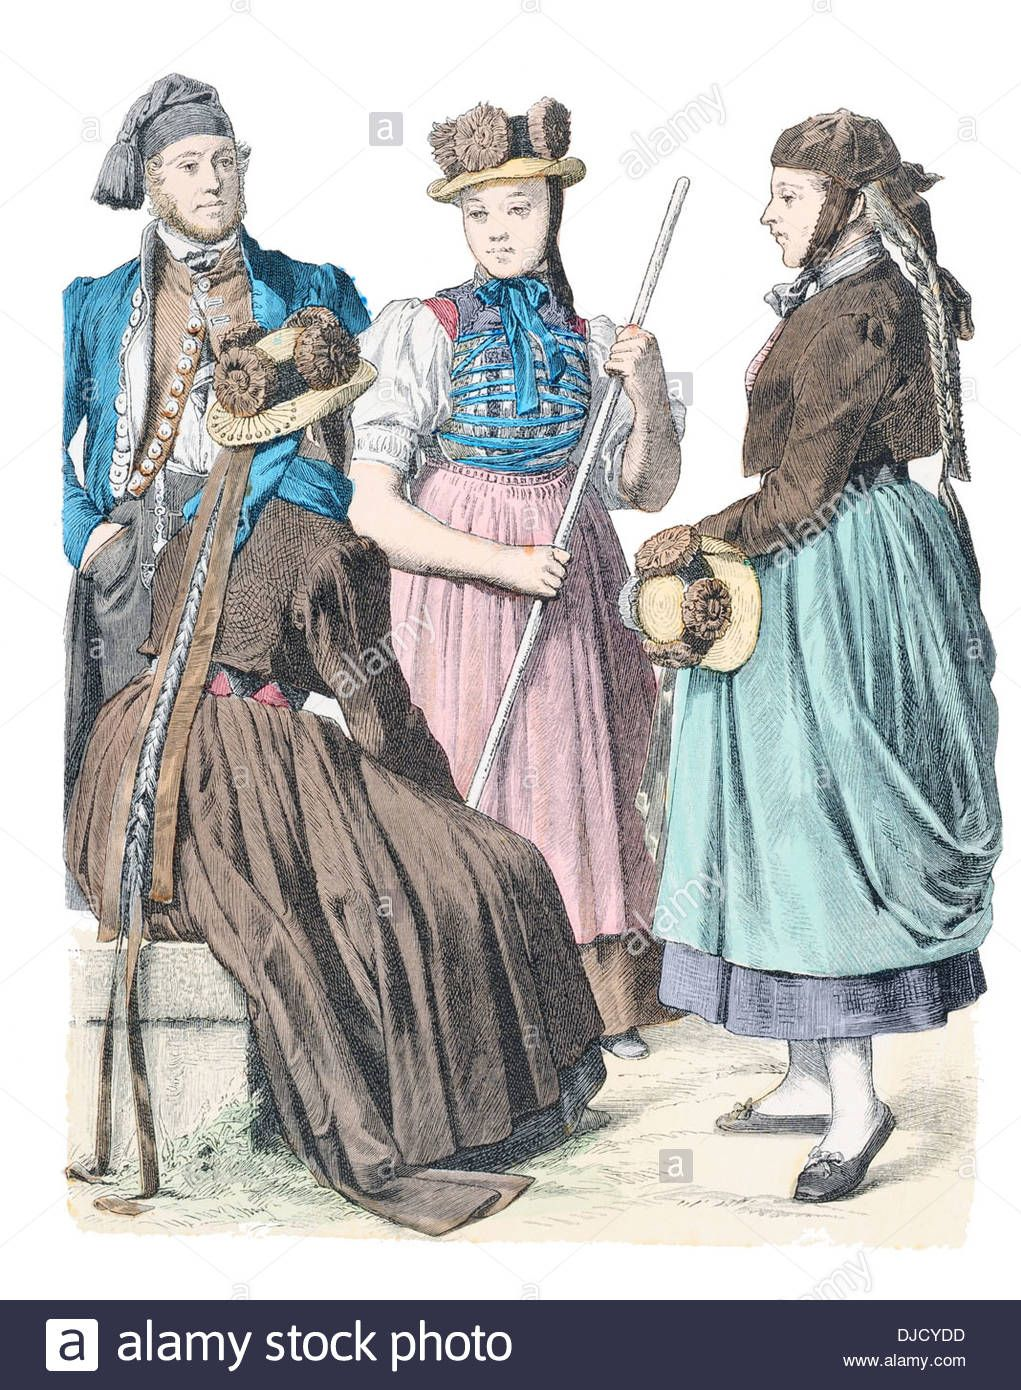 Late 19th Century Xix 1800s Germany Costume Of (left To Right) St Stock Photo, Royalty Free Image: 62979881 - Alamy